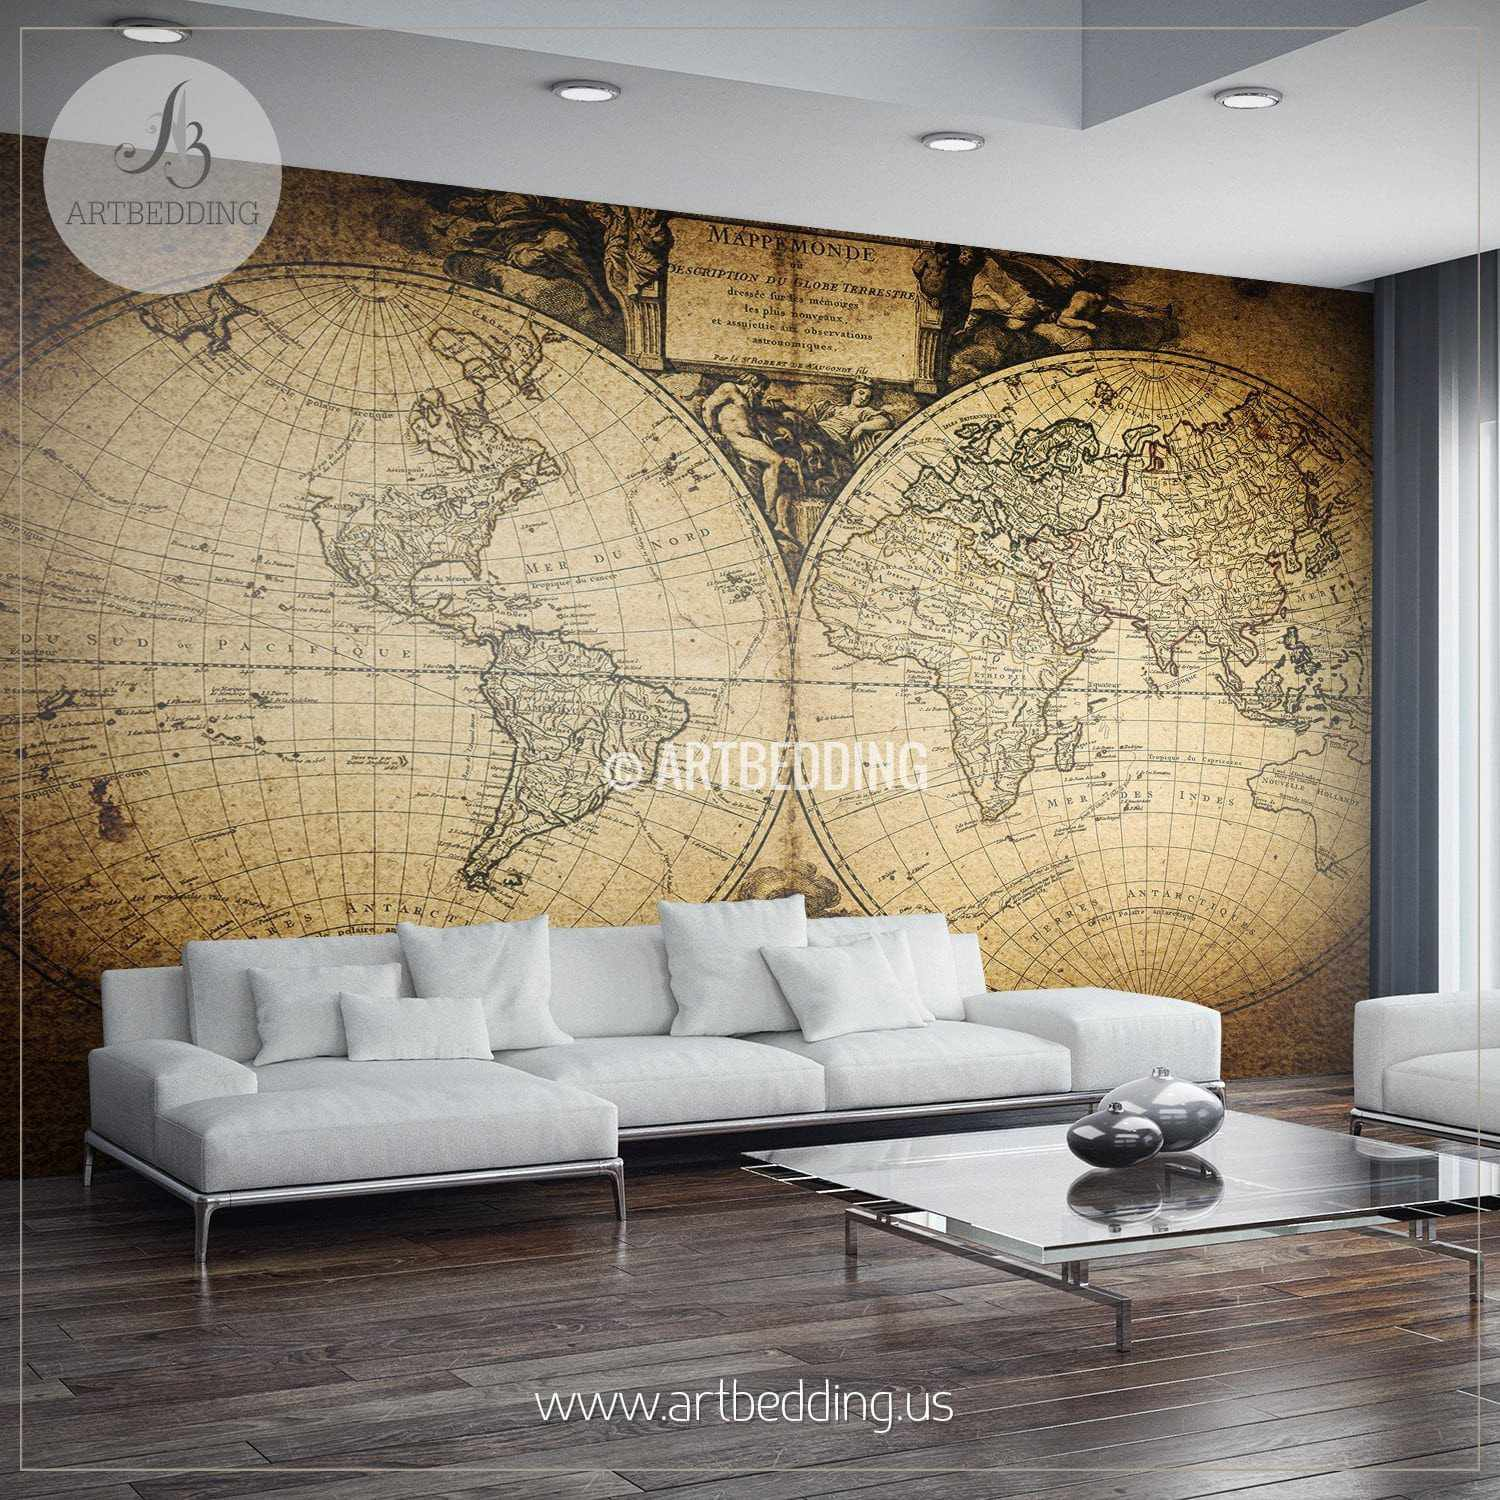 Vintage map wall mural self adhesive photo mural artbedding vintage world map 1752 hemisphere wall mural self adhesive peel stick photo mural amipublicfo Gallery